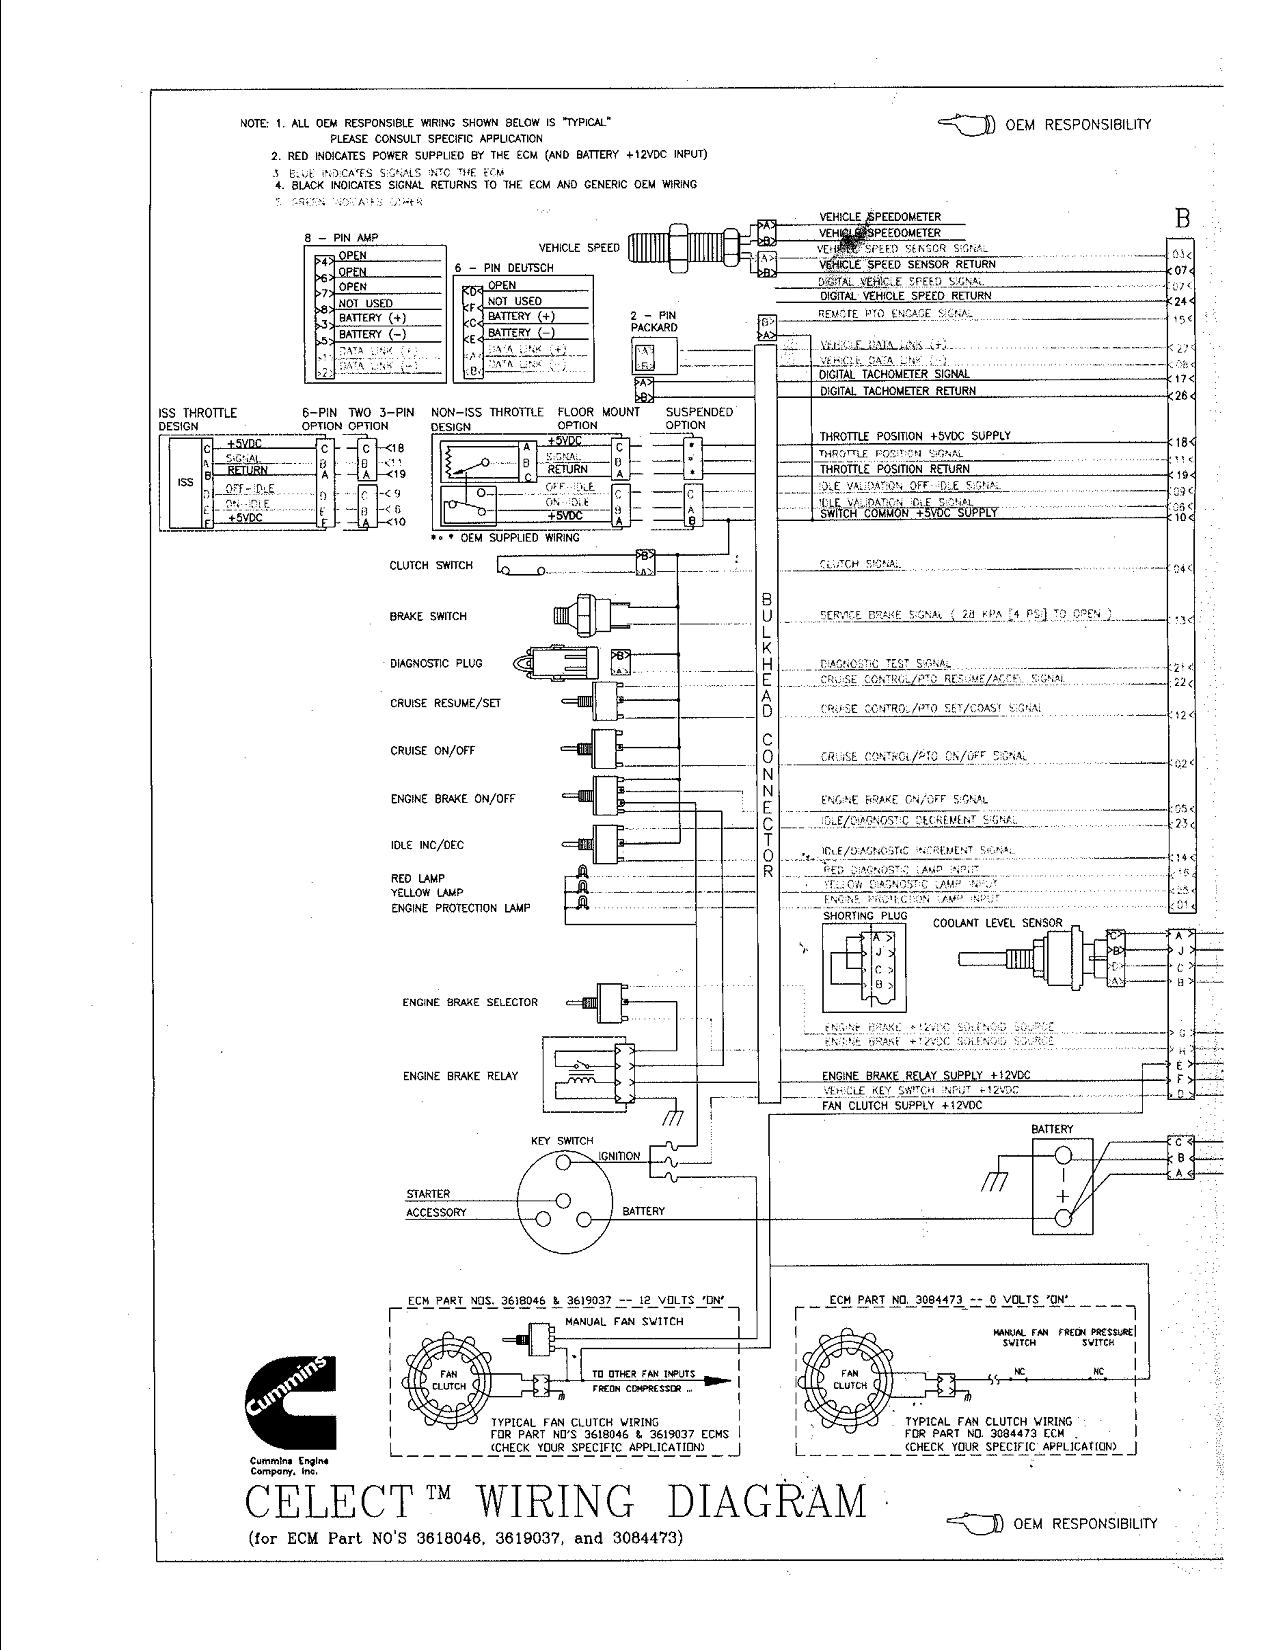 2002 Peterbilt 379 Wiring Diagram from static-assets.imageservice.cloud